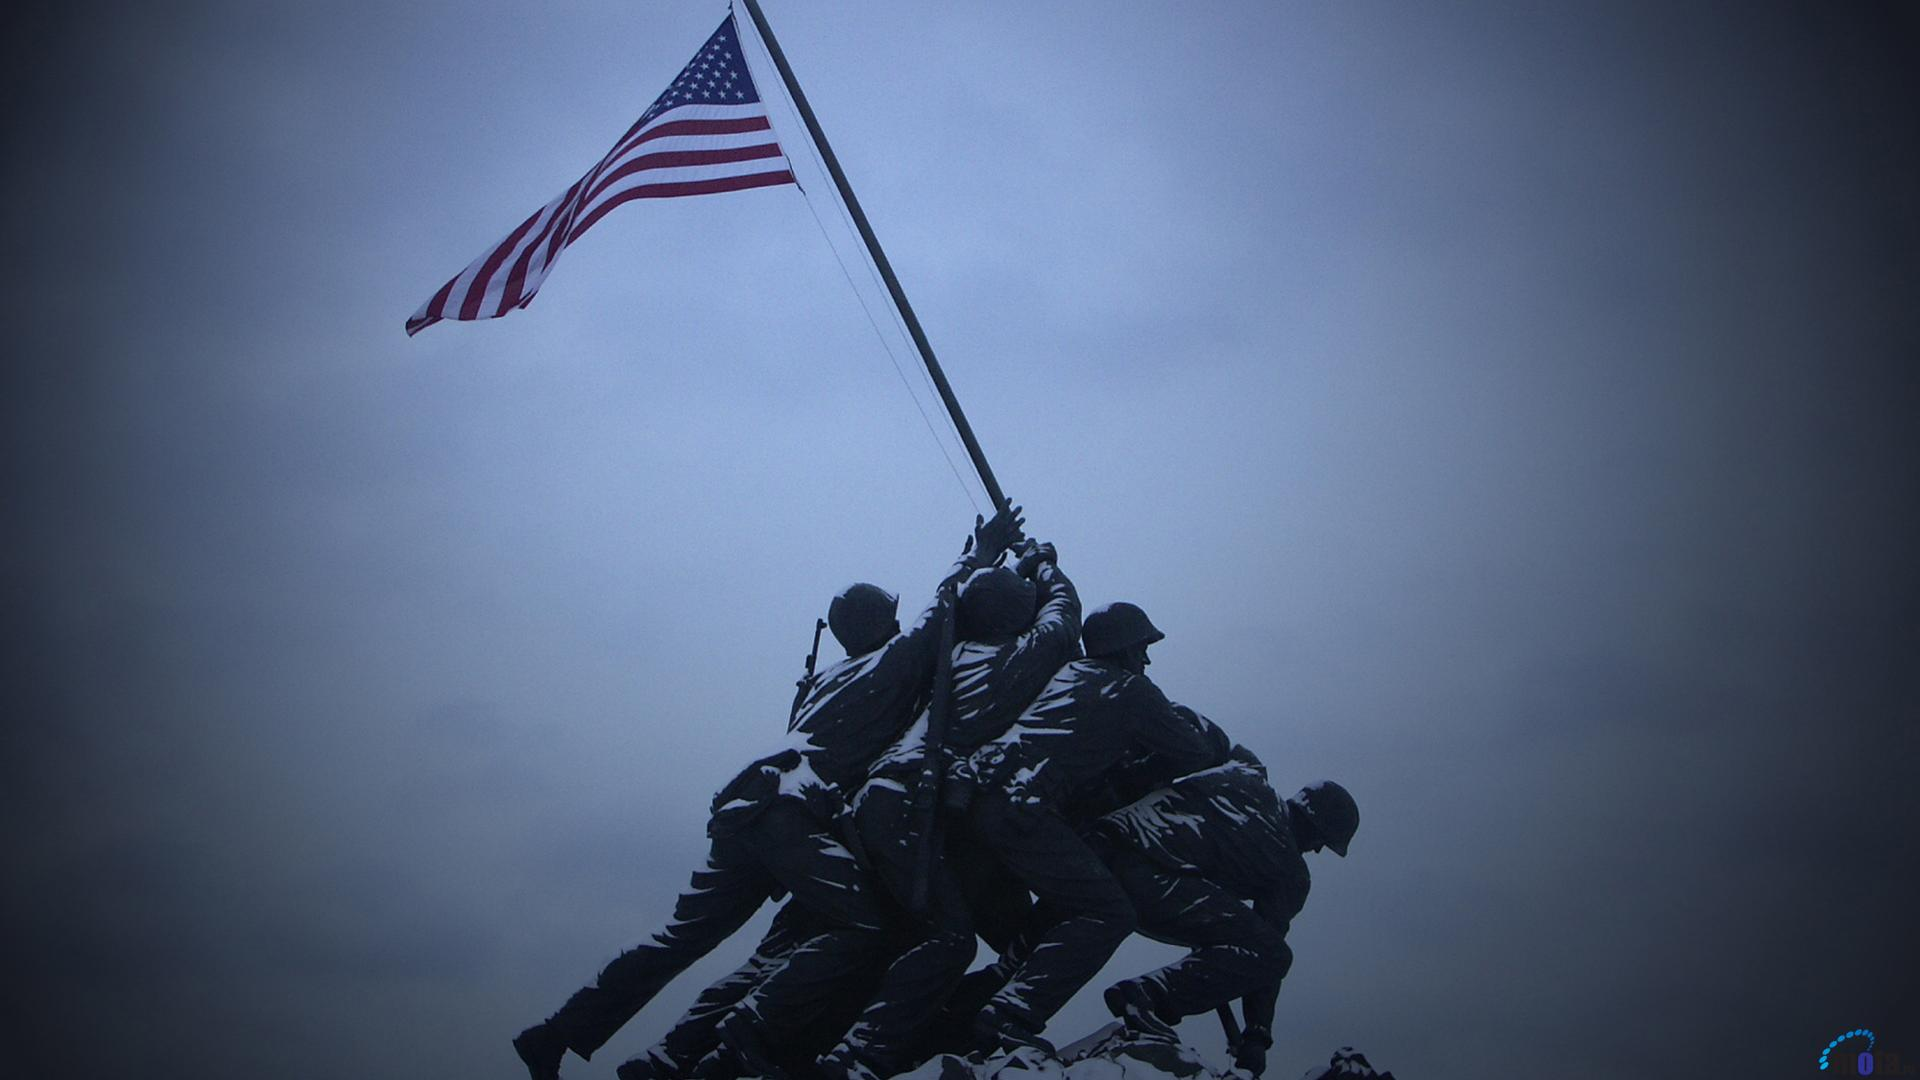 Wallpaper Marine Corps War Memorial 1920 x 1080 HDTV 1080p Desktop 1920x1080